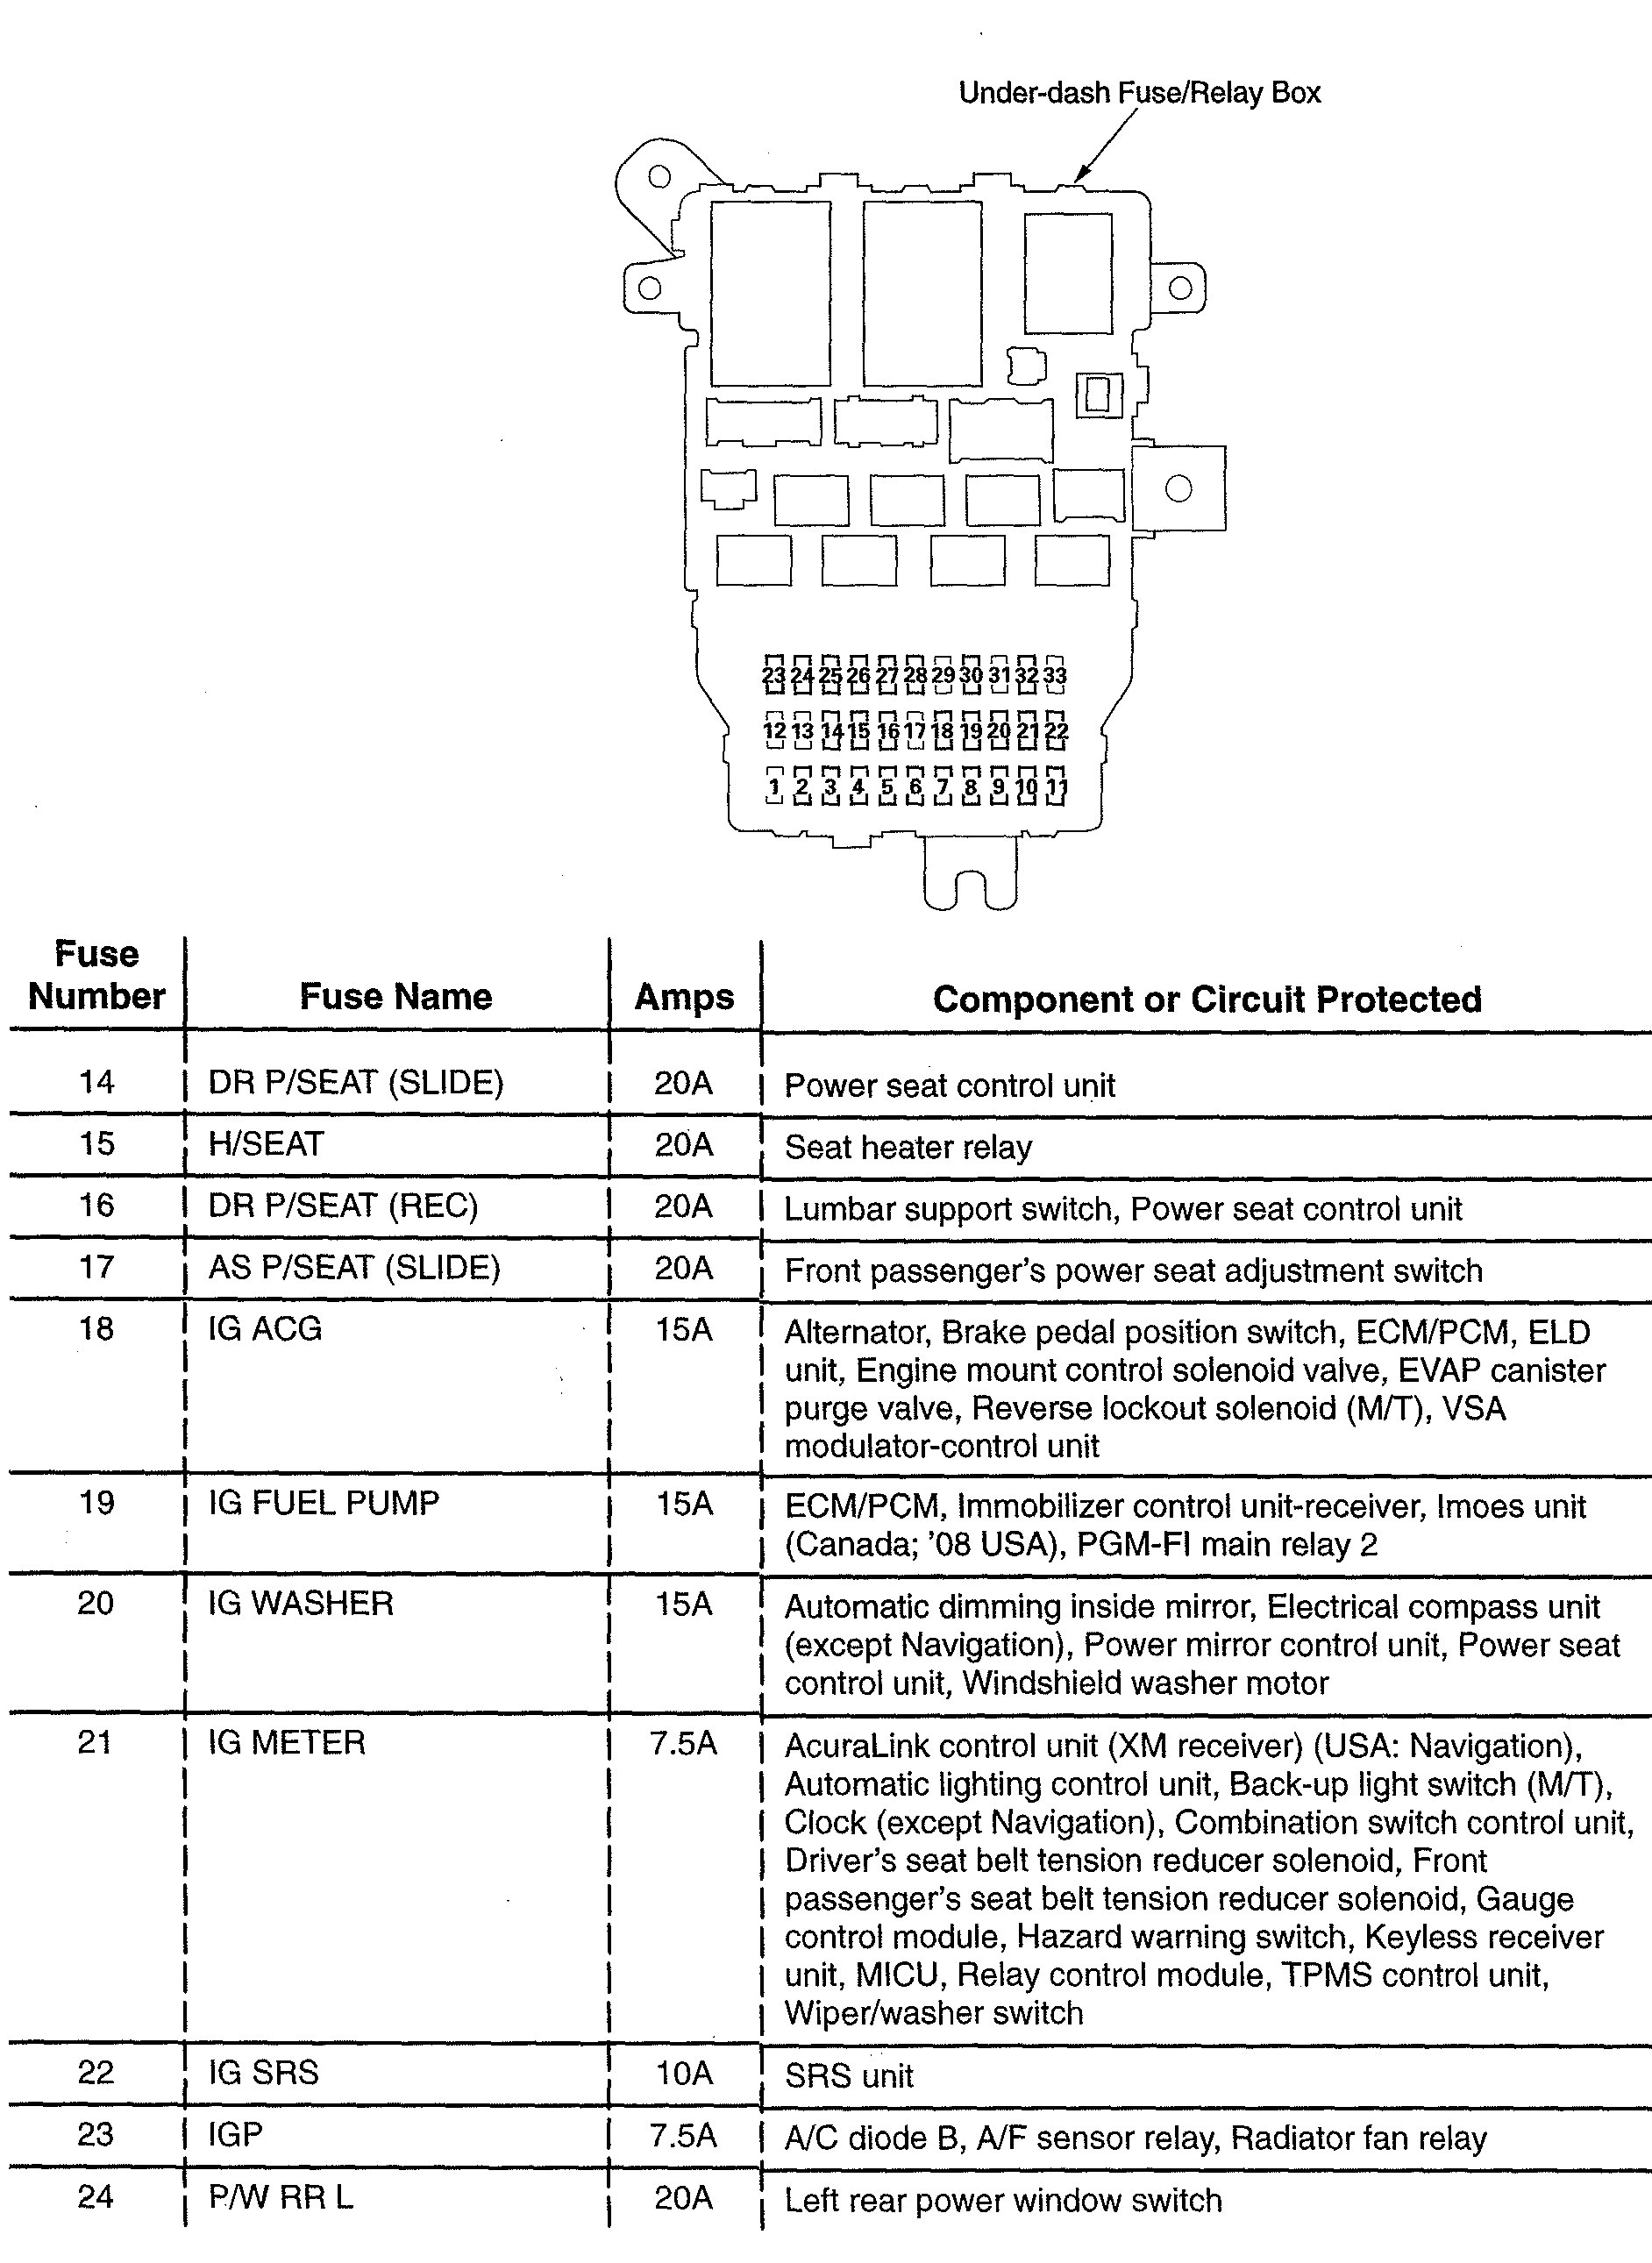 acura tl wiring diagram fuse panel 2 2008 acura tl (2008) wiring diagrams fuse panel carknowledge 2007 acura tl wiring diagram at pacquiaovsvargaslive.co